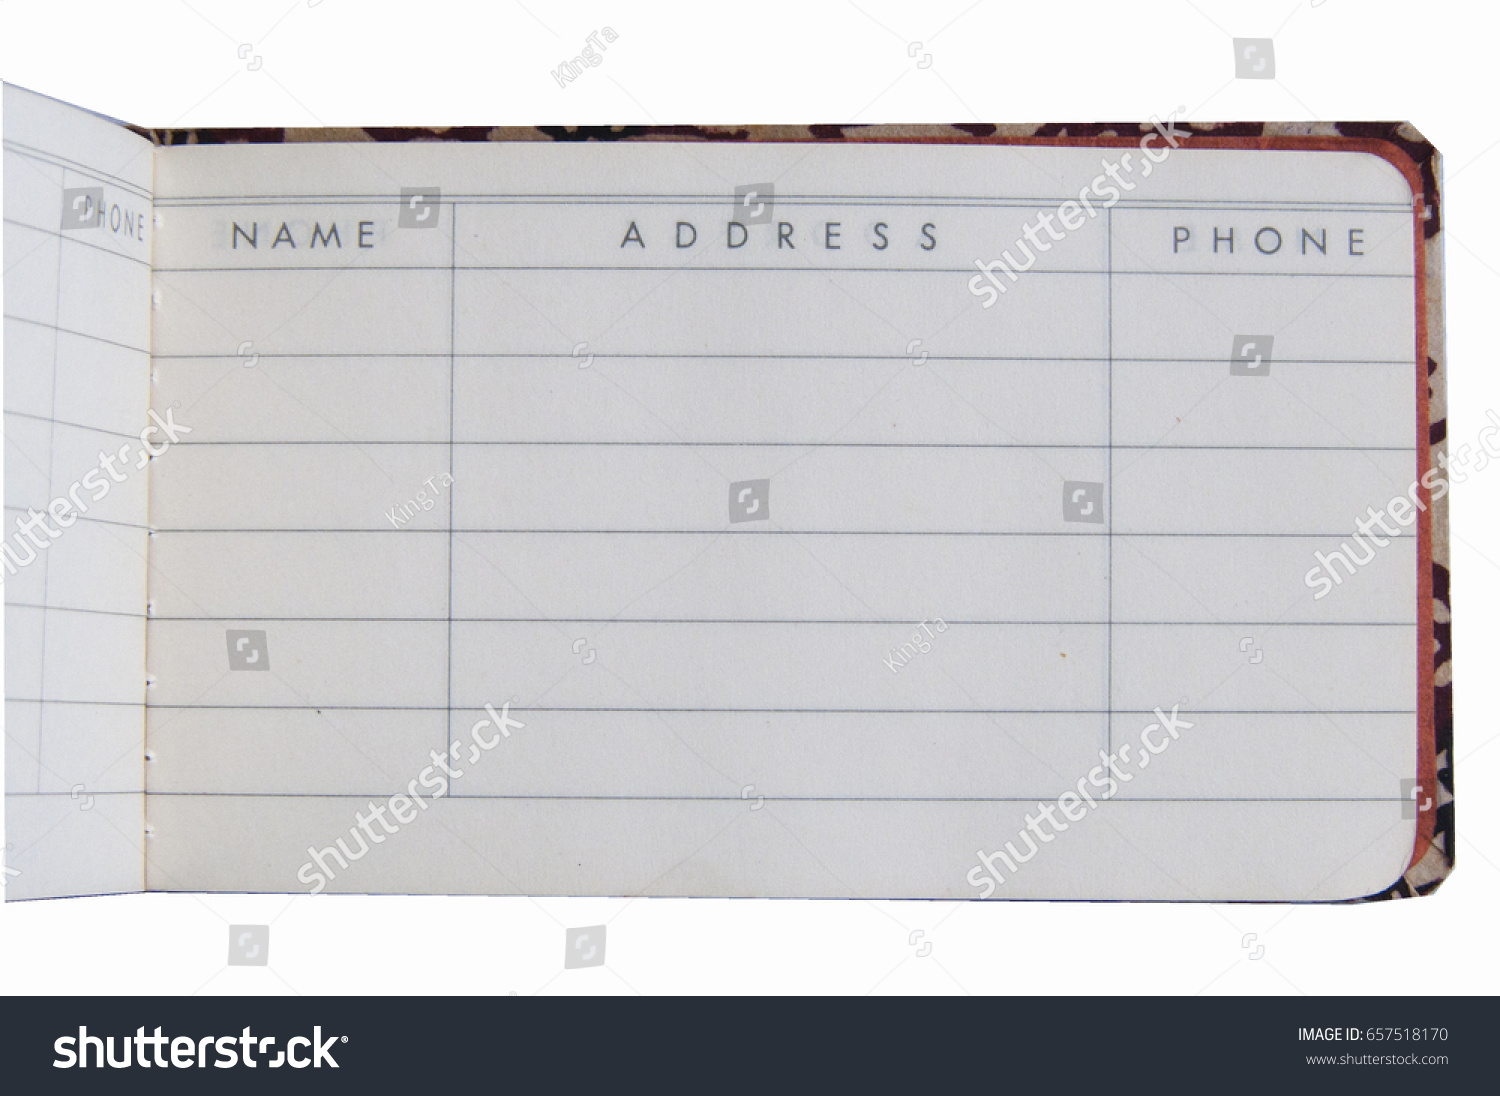 small open blank address book page stock photo edit now 657518170